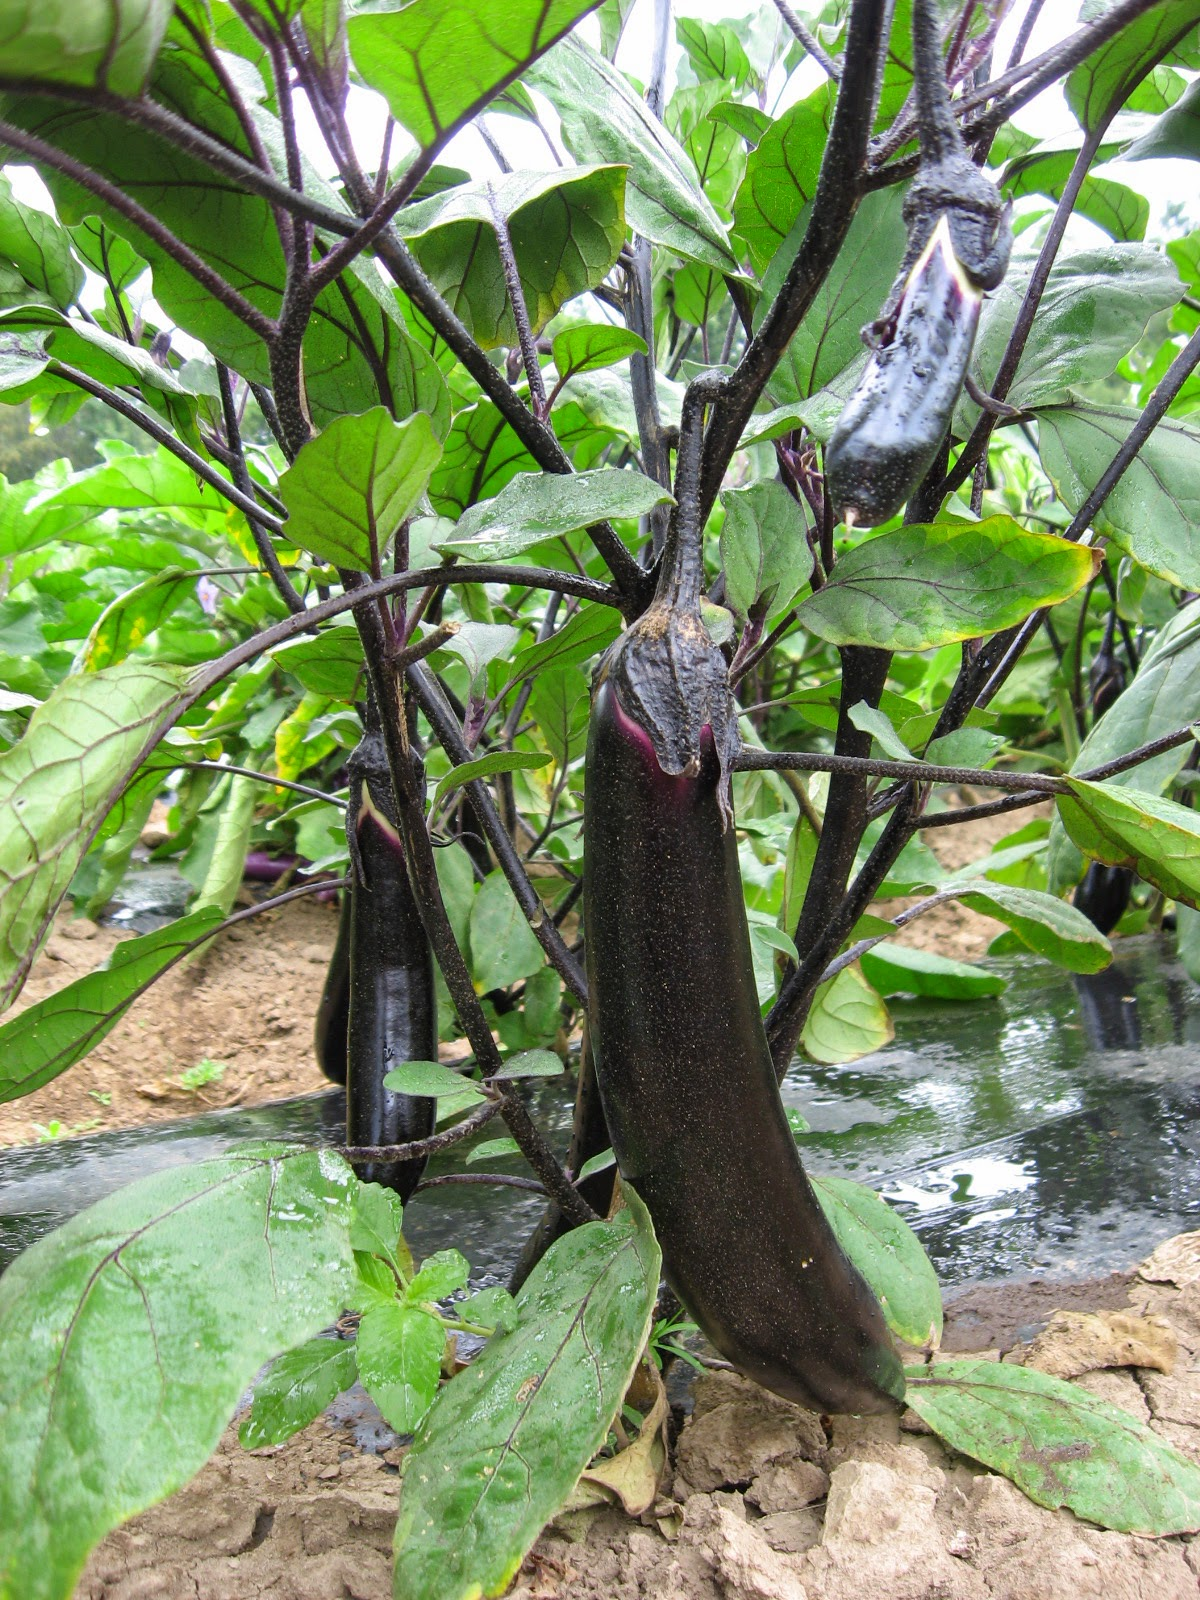 Japanese Eggplant on the vine